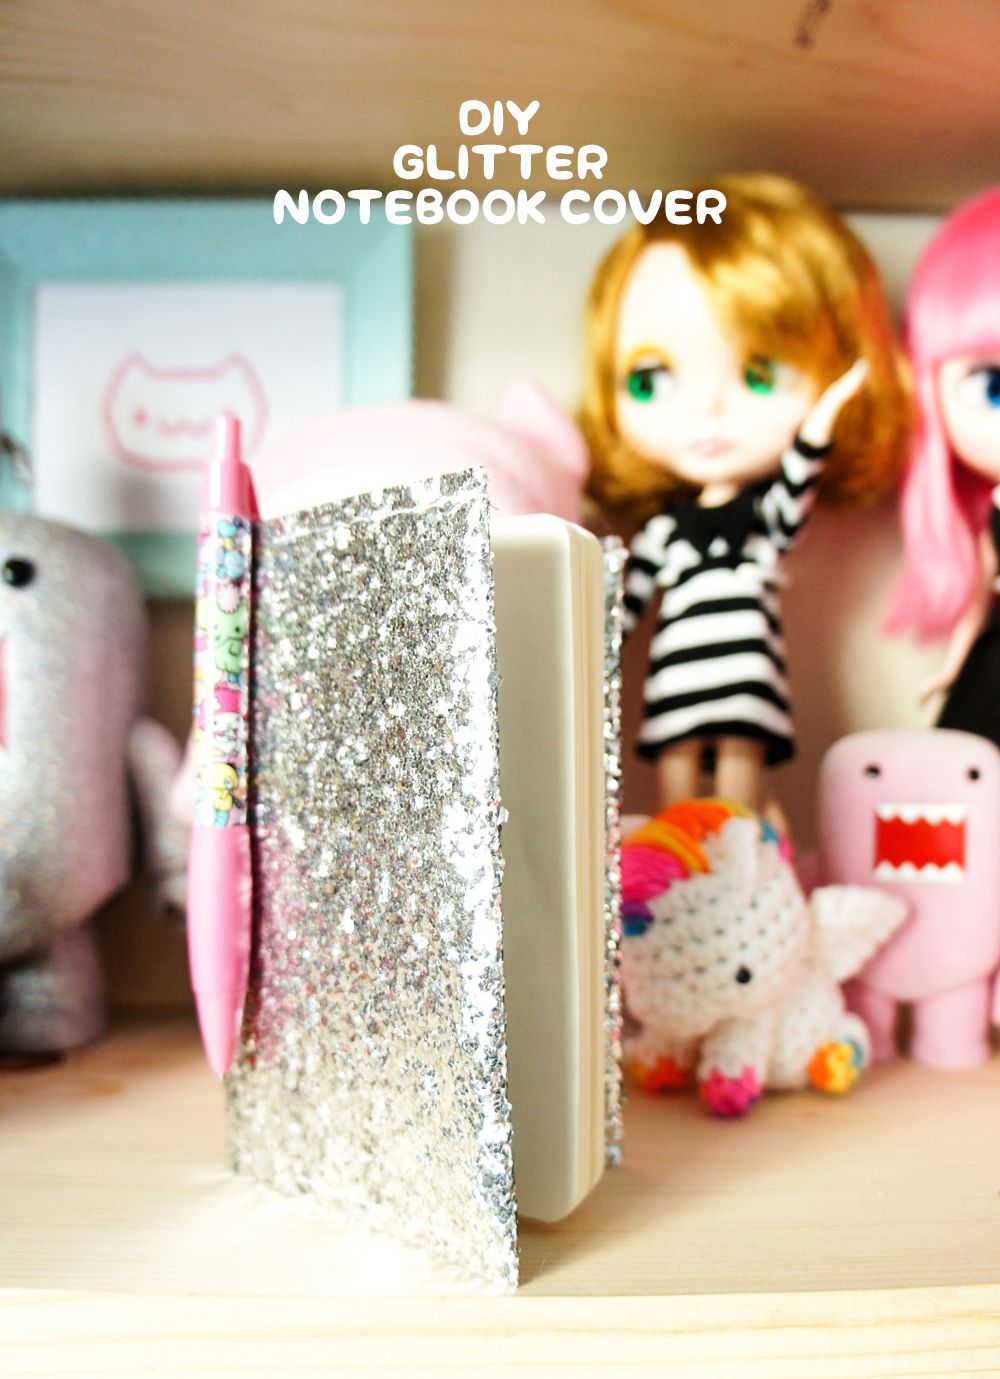 Diy glitter notebook cover - Diy Glitter Notebook Cover That Won T Get Glitter Everywhere Via The Pink